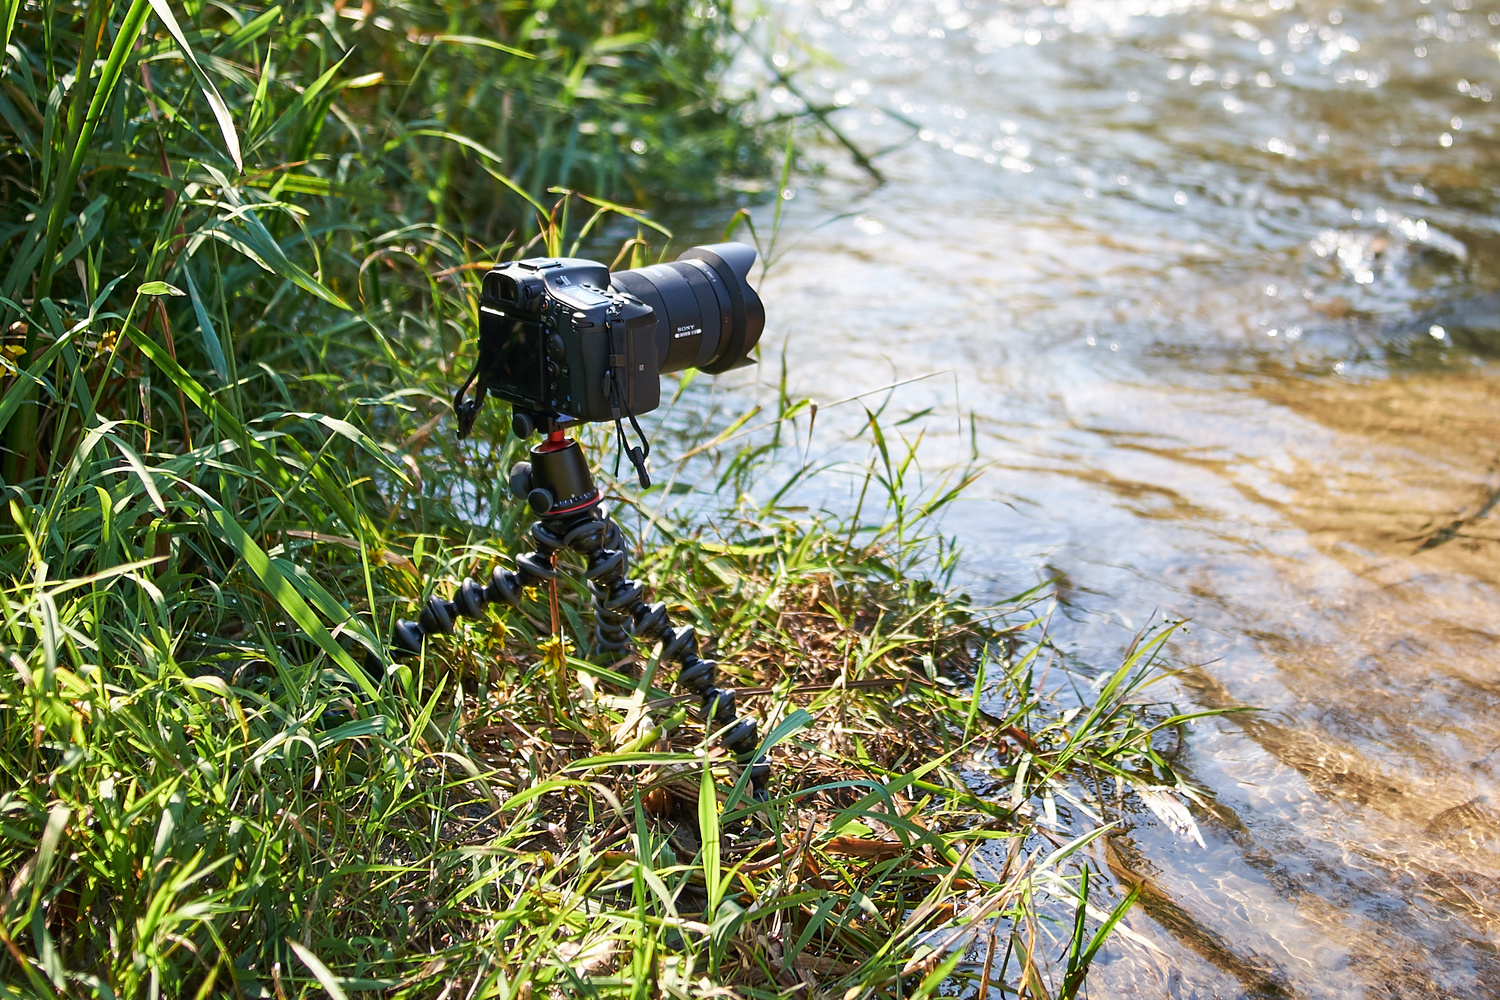 Fstoppers Reviews The Joby Gorillapod 5k Tripod Kit For Dslr Cameras Gorilla Pod 3k Other Option Is To Just Hold Itself With One Hand While You Are Shooting If Youre Interested In Vlog Style Videos Where Need